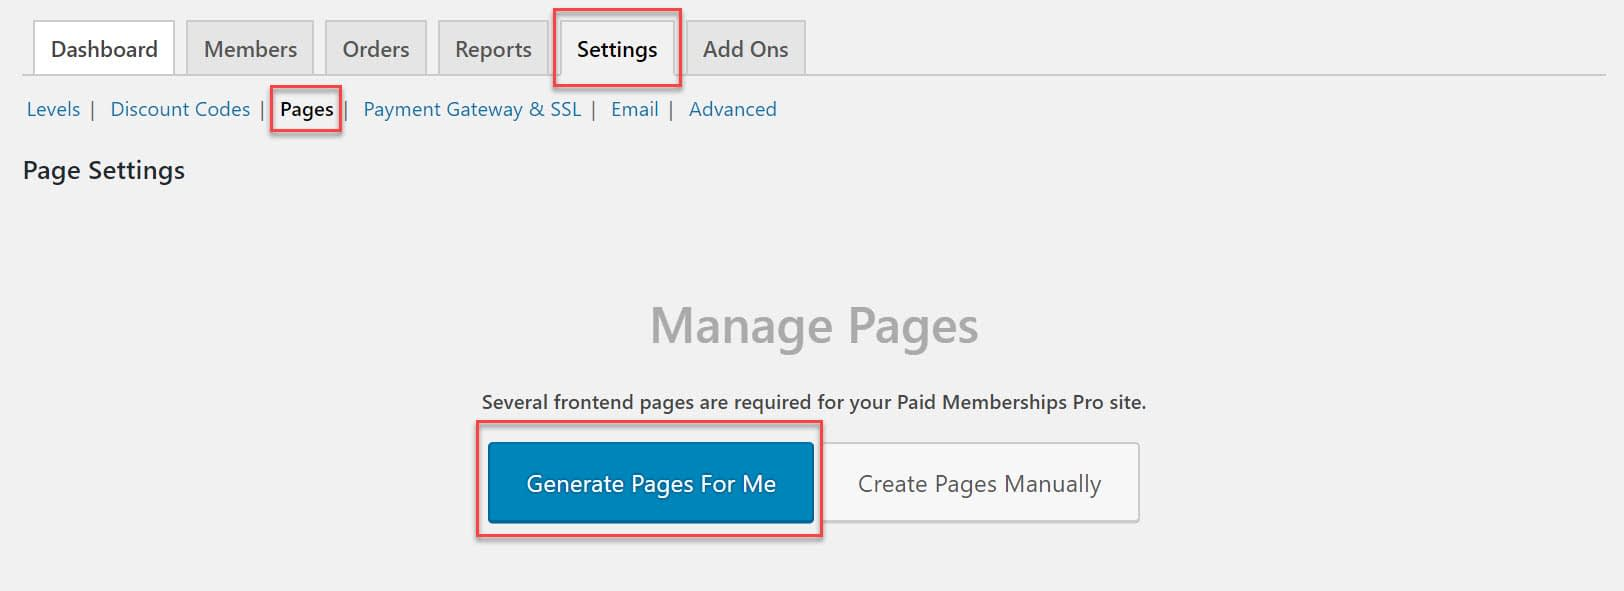 Generate Pages